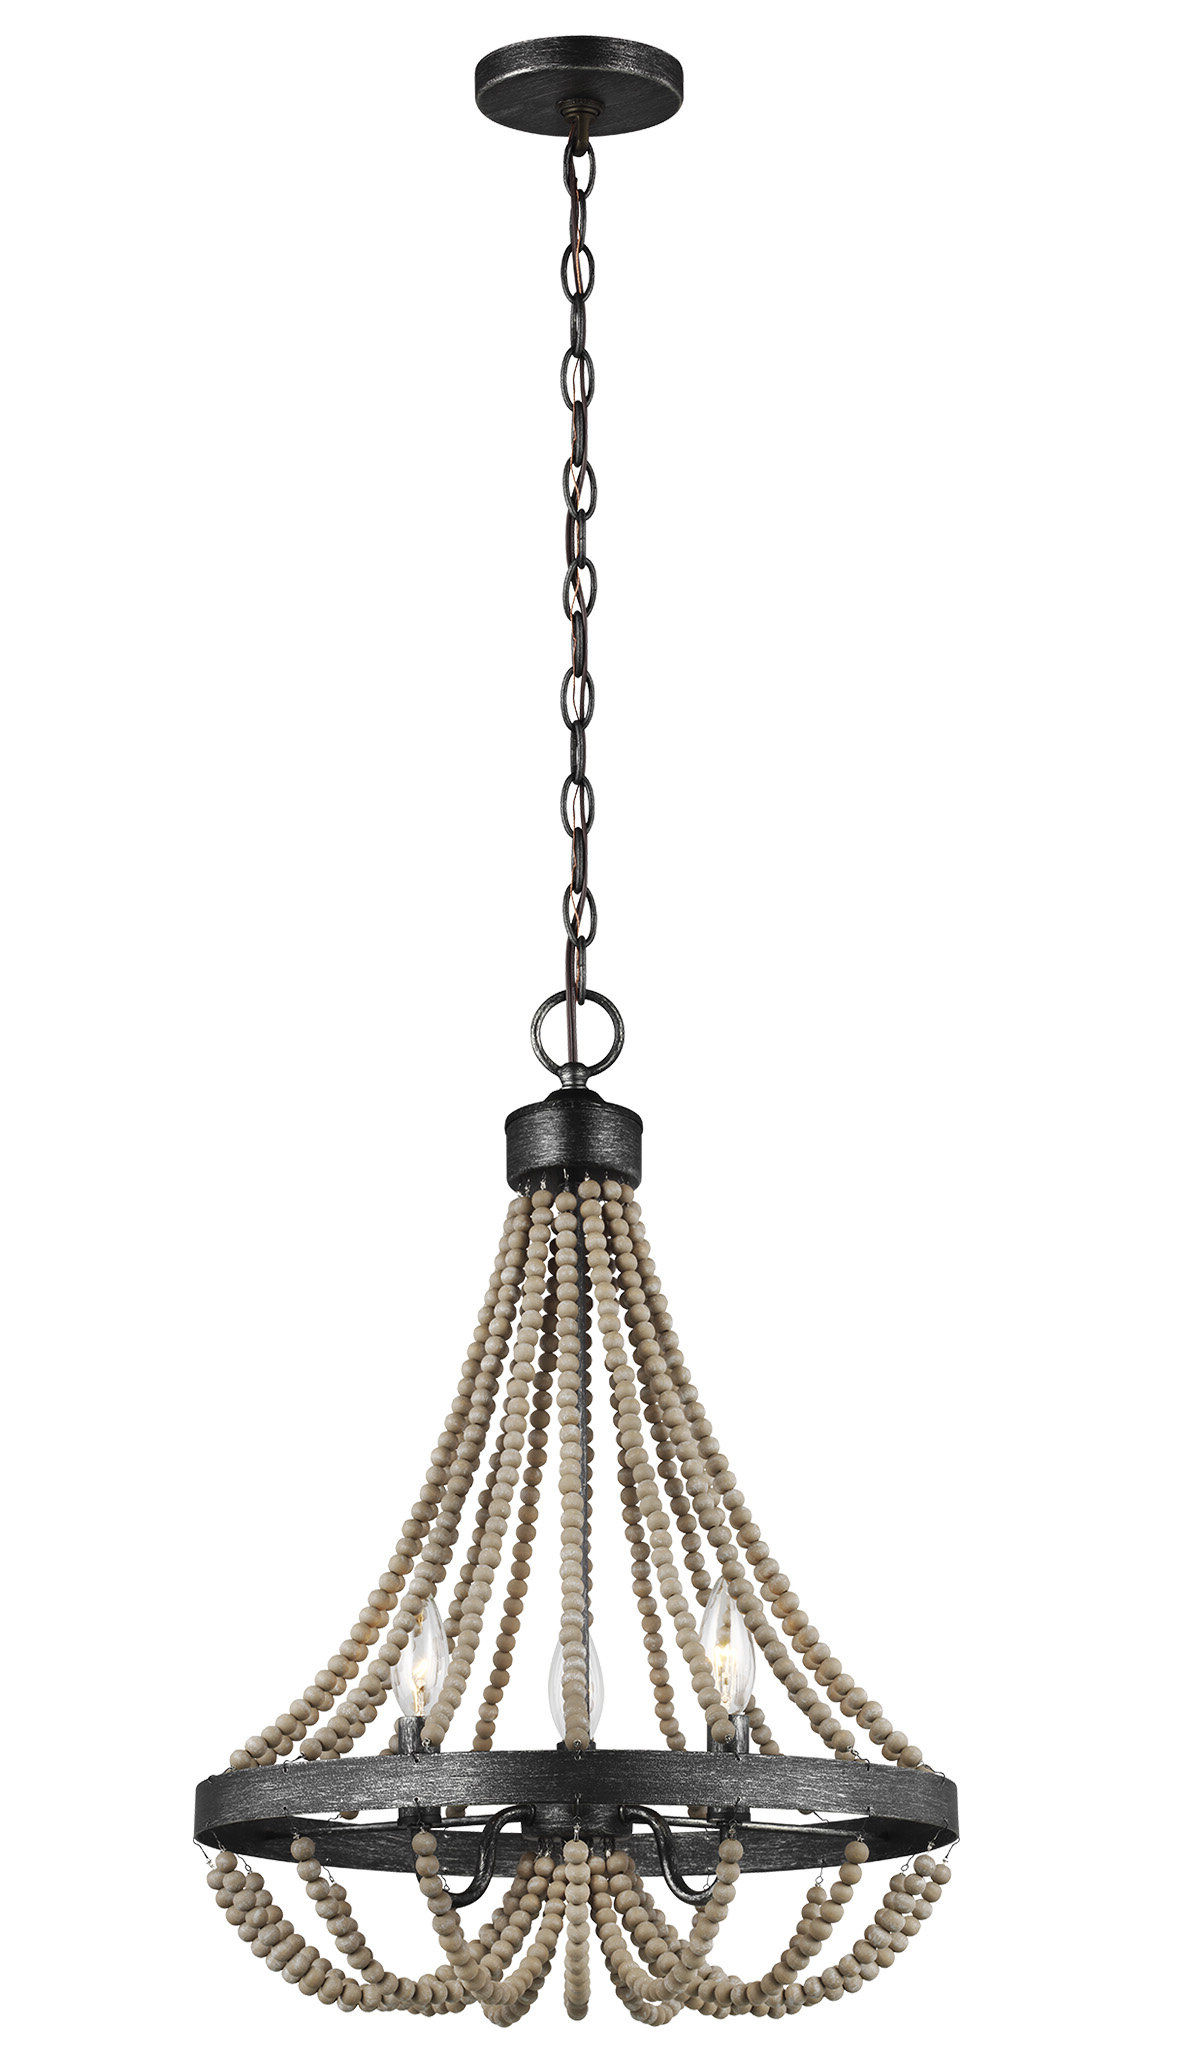 Widely Used New Braunfels 3 Light Empire Chandelier Inside Duron 5 Light Empire Chandeliers (View 25 of 25)